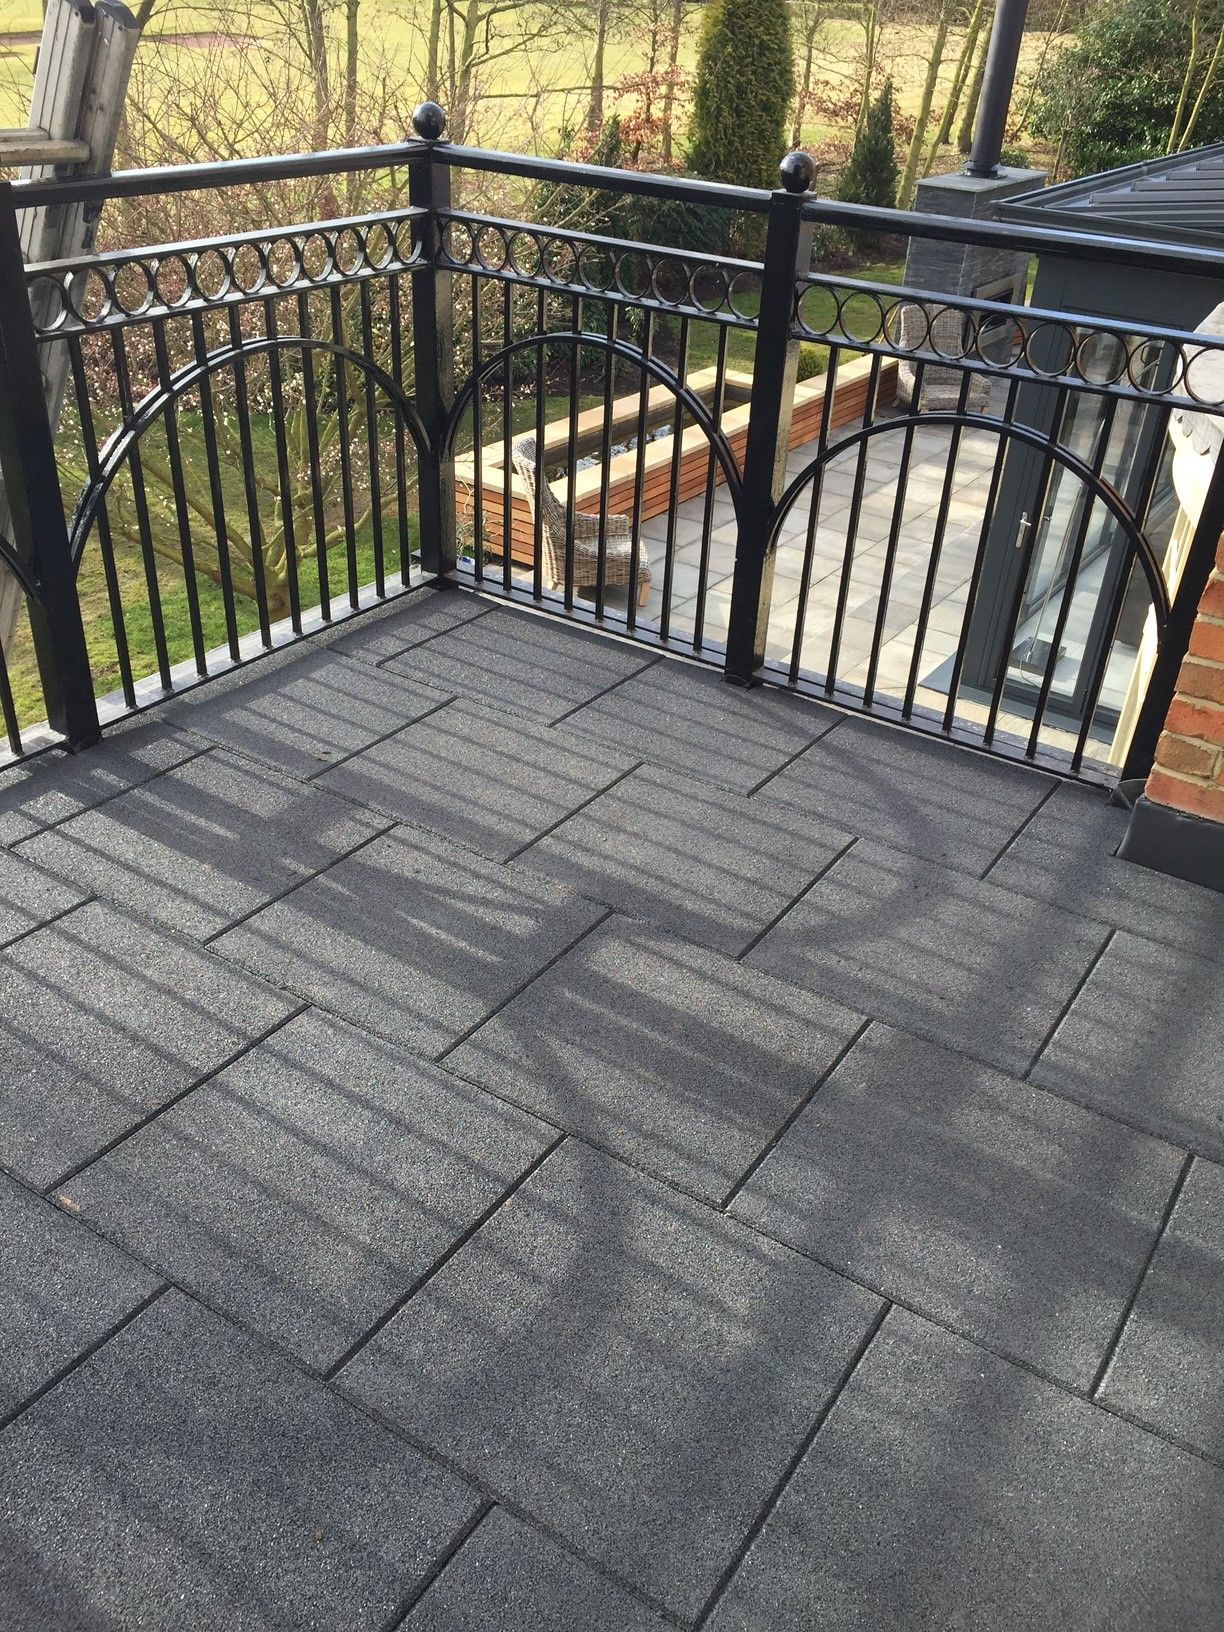 This Castleflex Charcoal Grey Rubber Promenade Tile Is